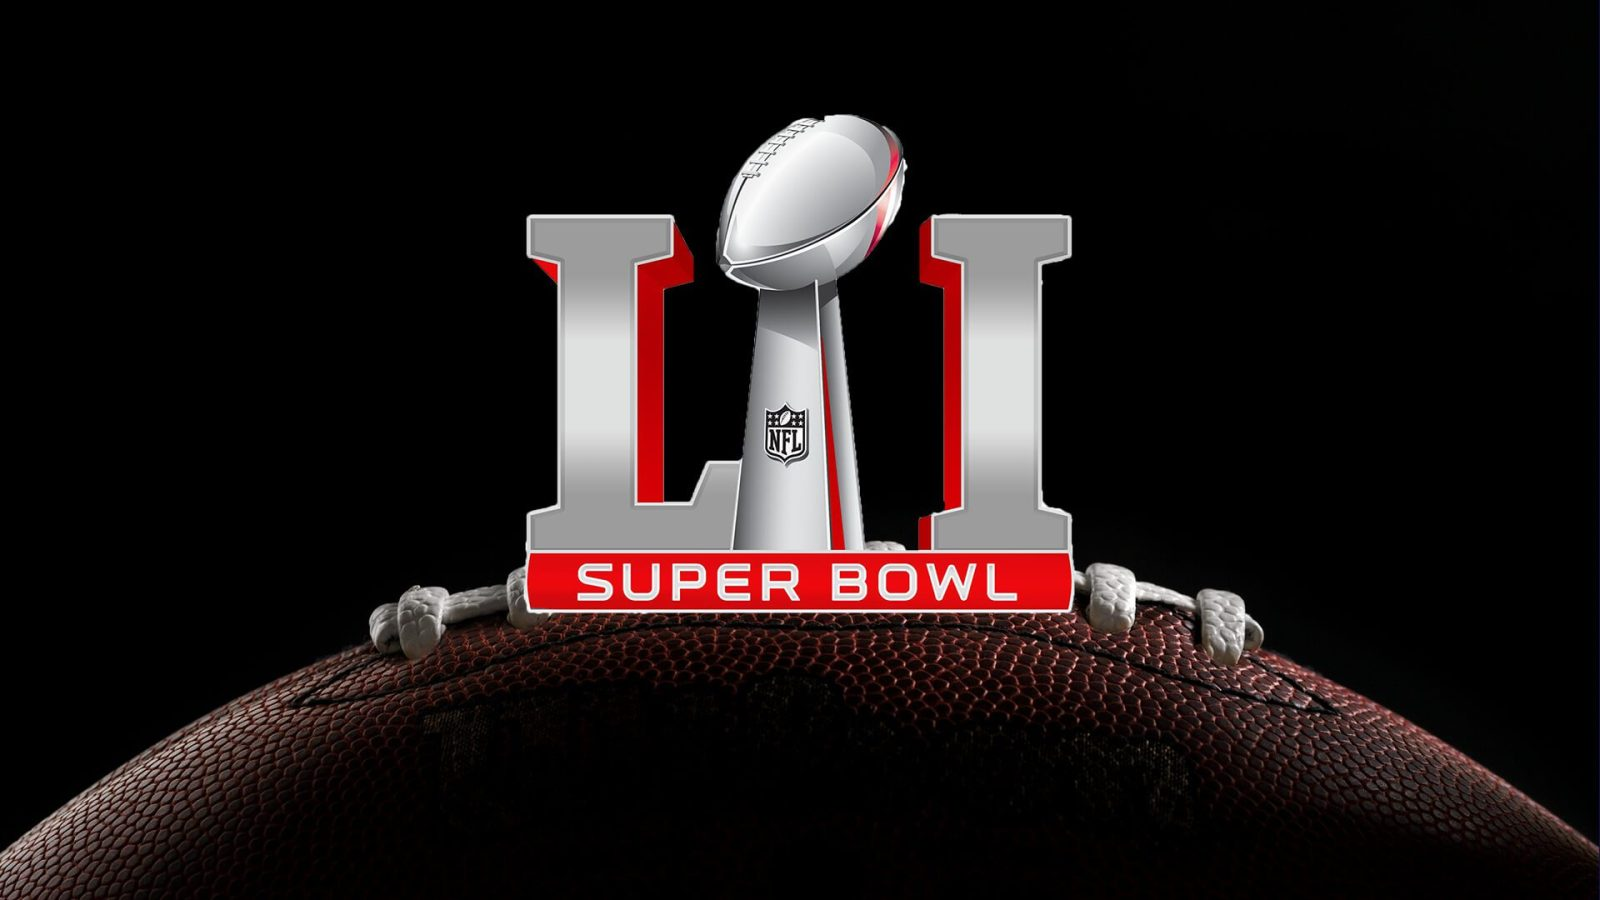 Pepper Virtual Assistants Philippines What You Can Learn From Super Bowl Sunday 2017